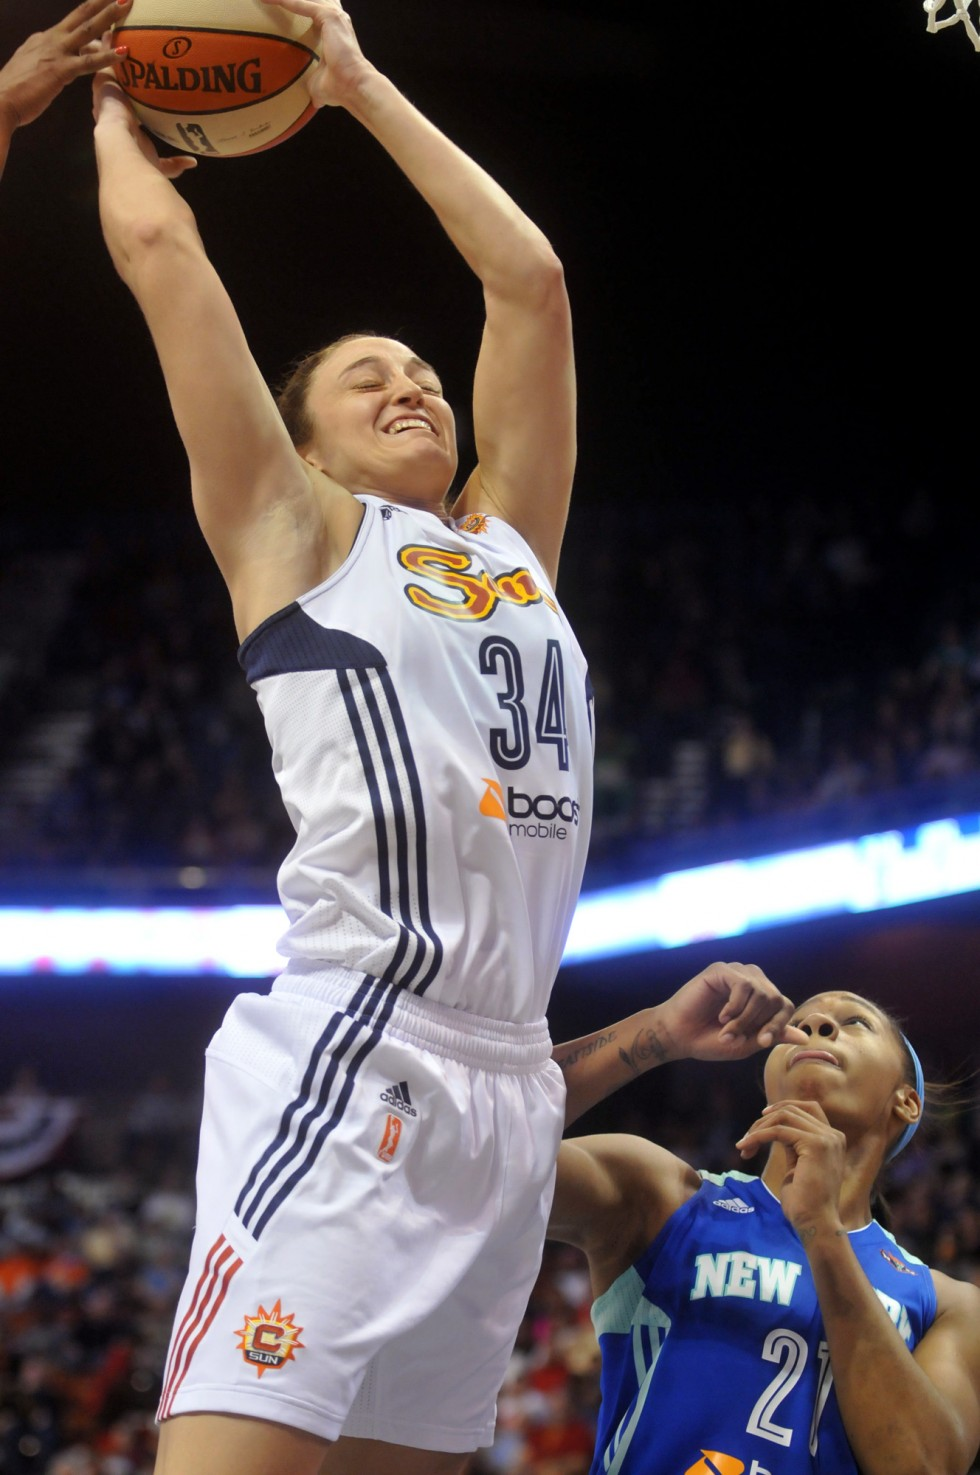 Connecticut Sun rookie Kelly Faris crashes the boards during the Sun season opener at Mohegan Sun Arena Saturday night.  Looking on is New York Liberty's Alex Montgomery. Connecticut Sun forward Mistie Bass, Kelly Faris and New York Liberty's Cappie Pondexter in action at the Sun season opener at Mohegan Sun Arena Saturday night. Photo by BRAD HORRIGAN | bhorrigan@courant.com